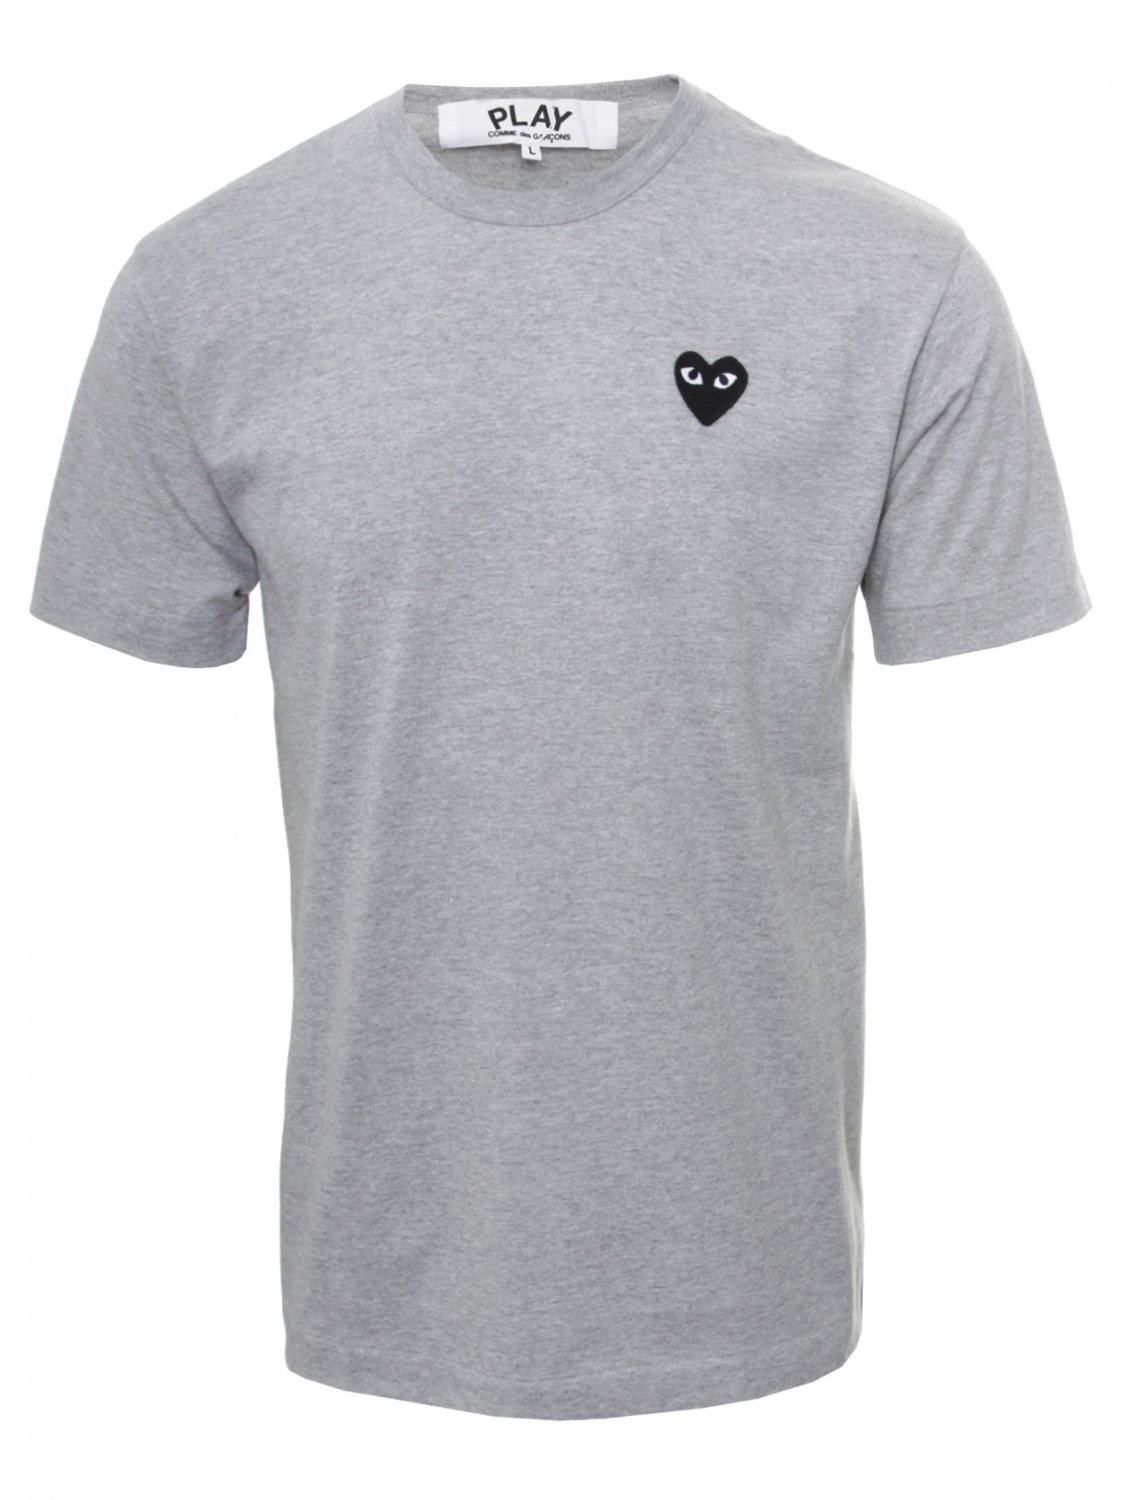 play comme des gar ons play mens black heart t shirt grey. Black Bedroom Furniture Sets. Home Design Ideas